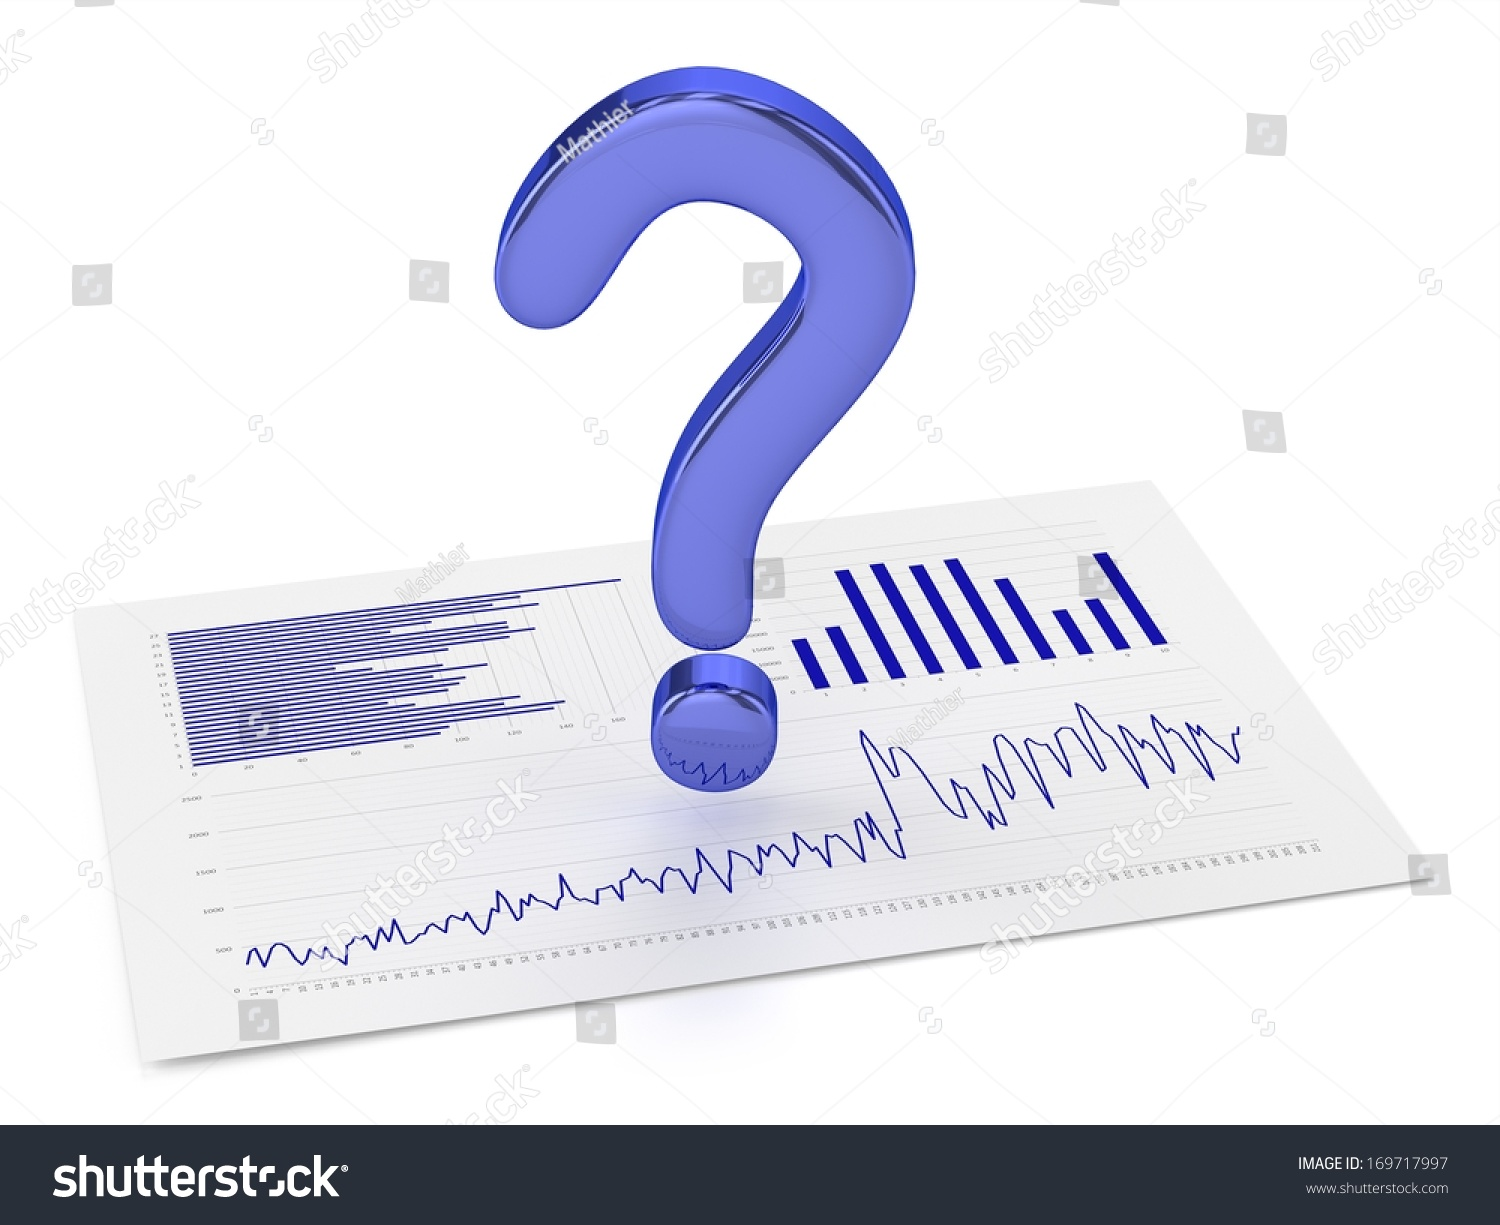 stock and points question Download exclamation point images and photos over 6,798 exclamation point pictures to choose from, with no signup needed download in under 30 seconds.